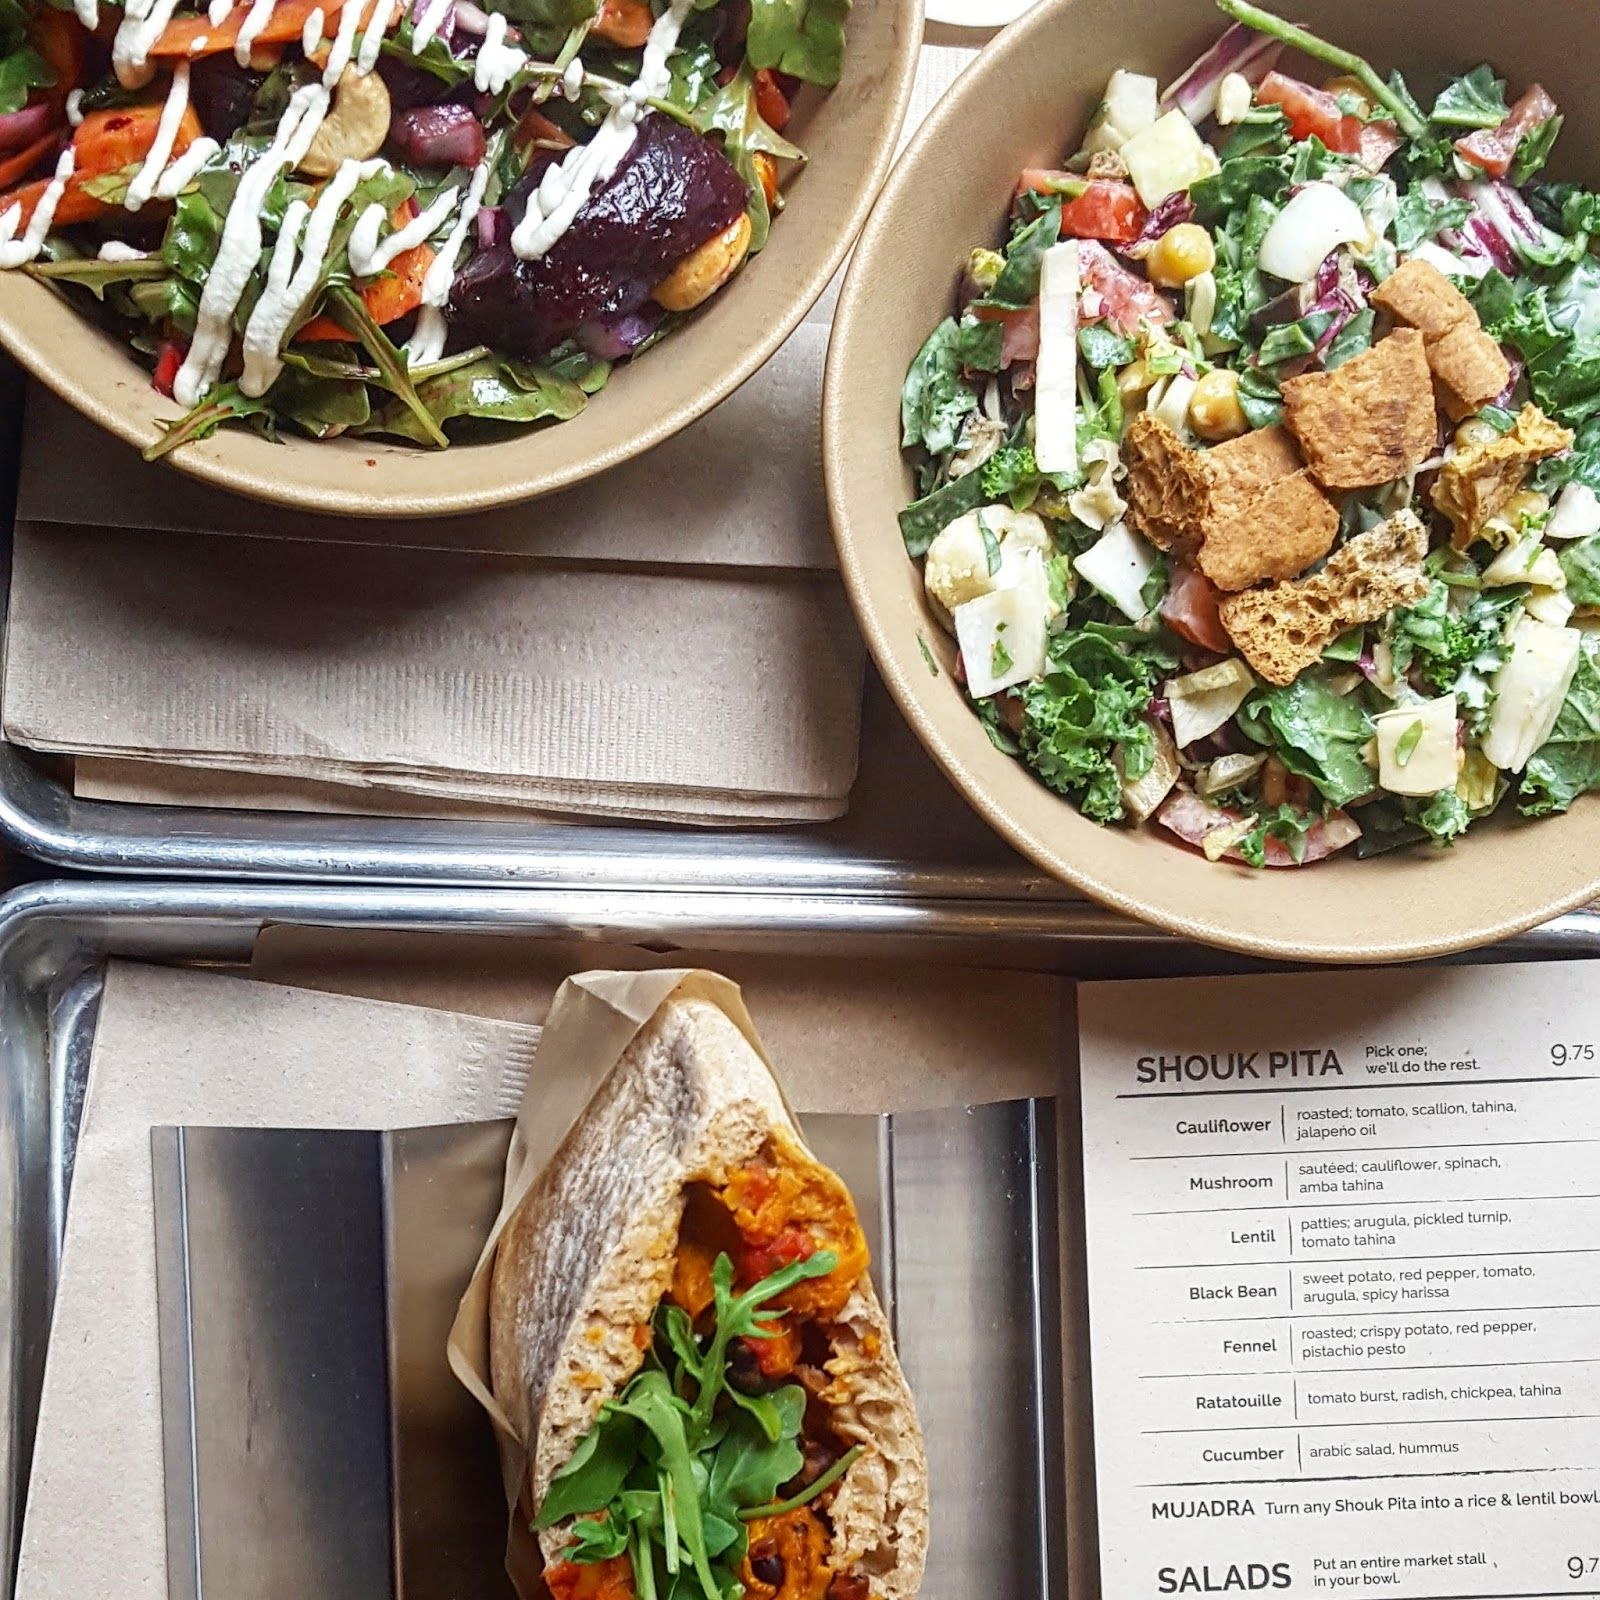 New Plant Based Vegan Restaurant In Washington Dc Shouk Check